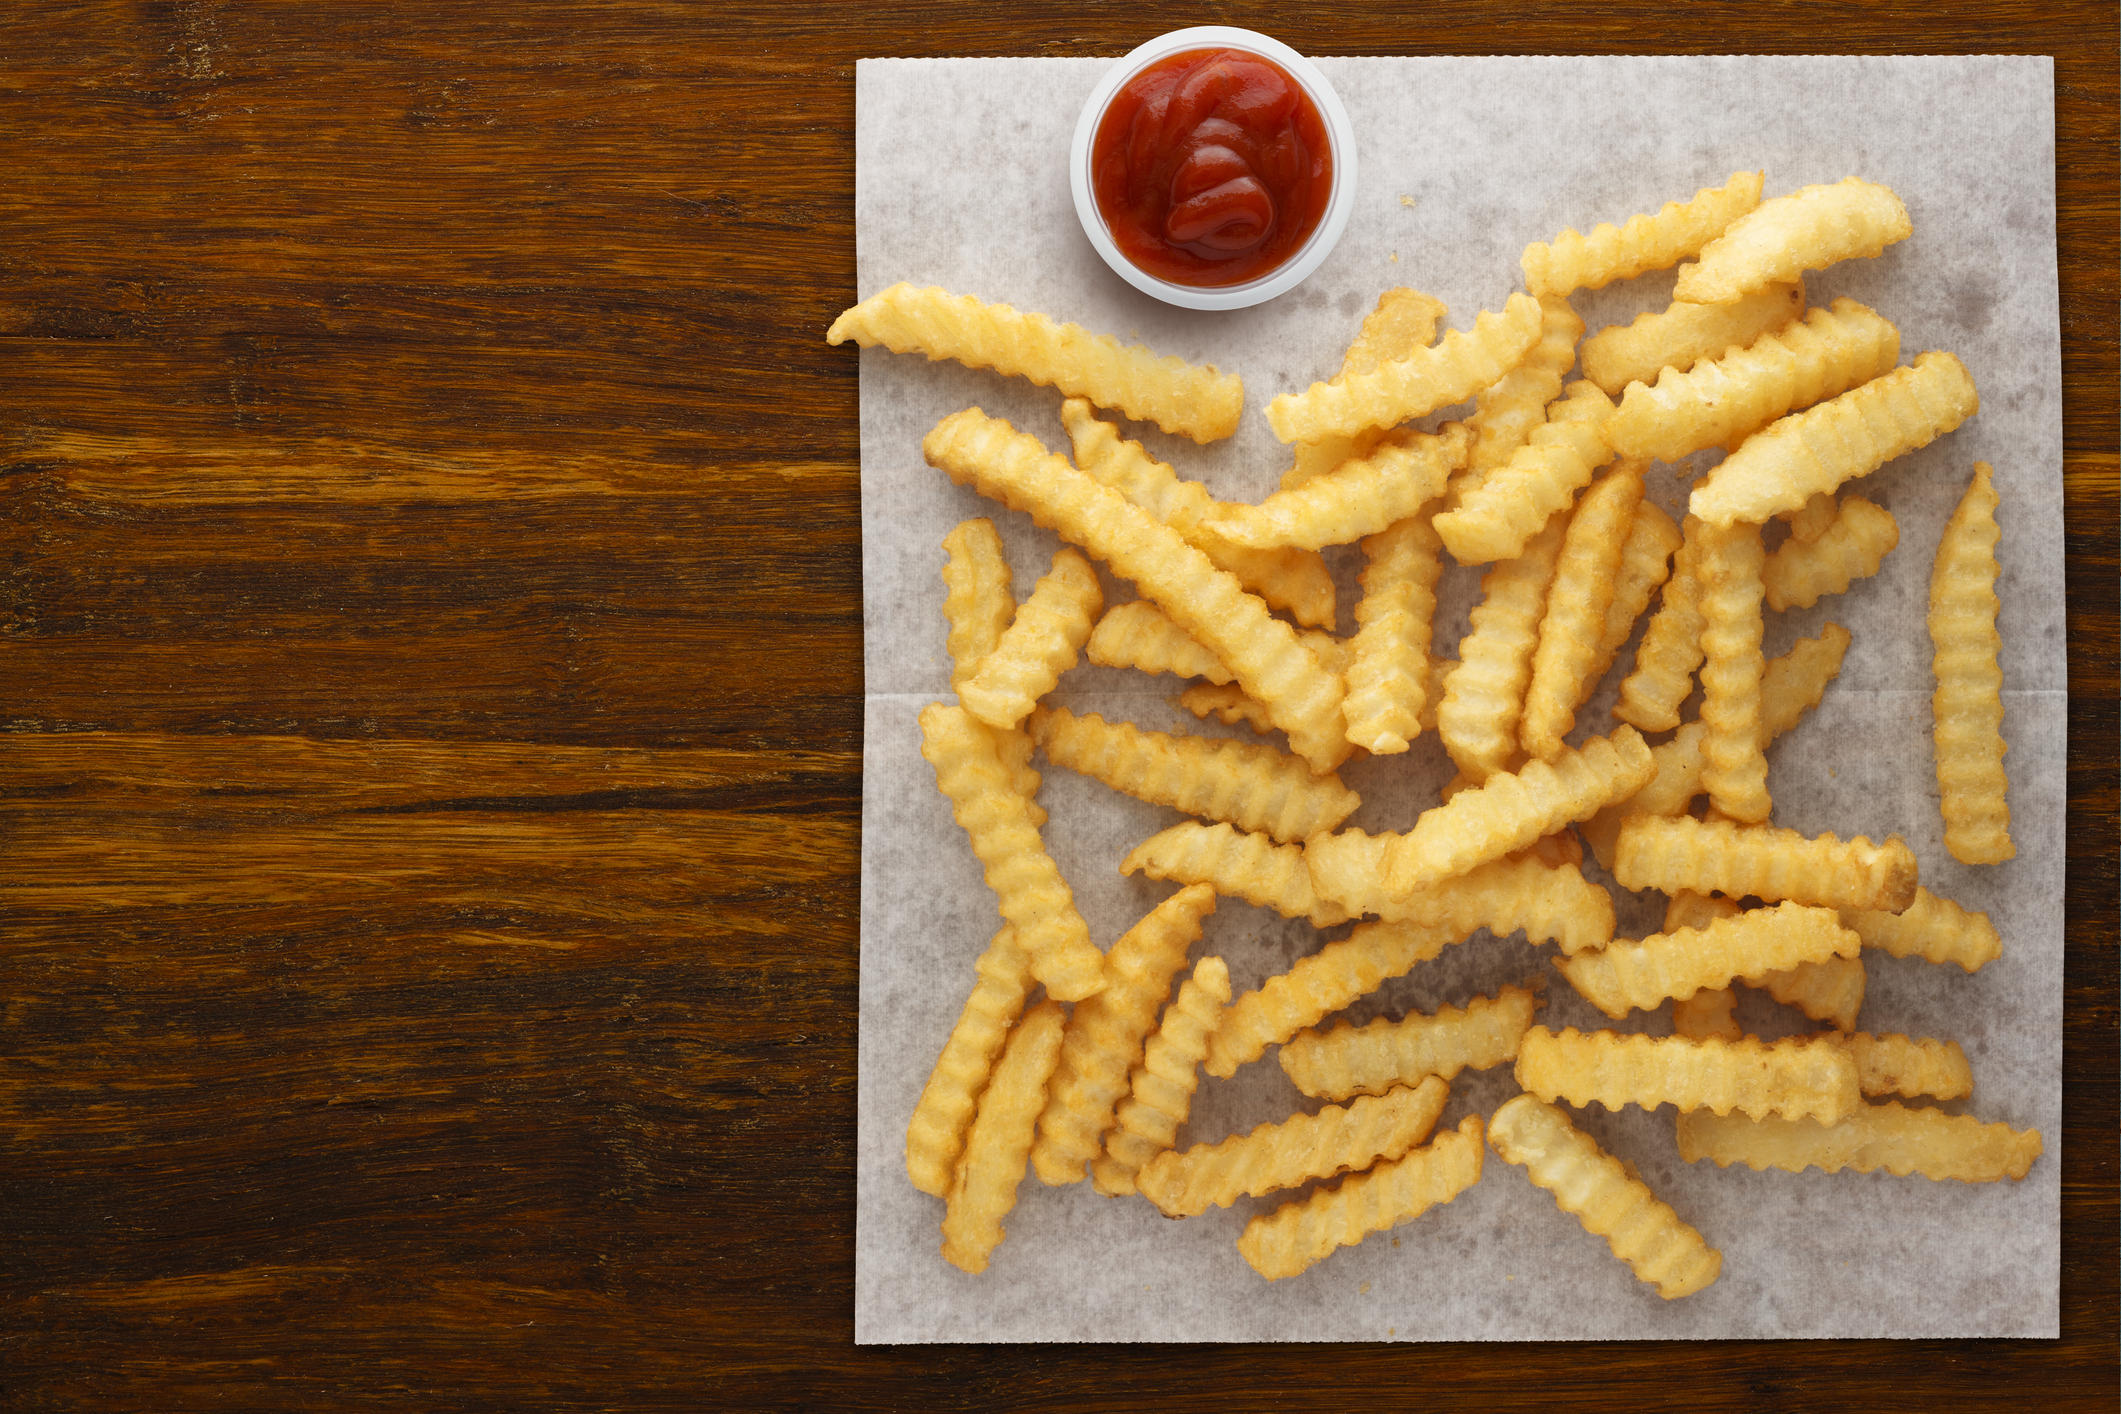 Krinkle Cut Fries and Ketchup